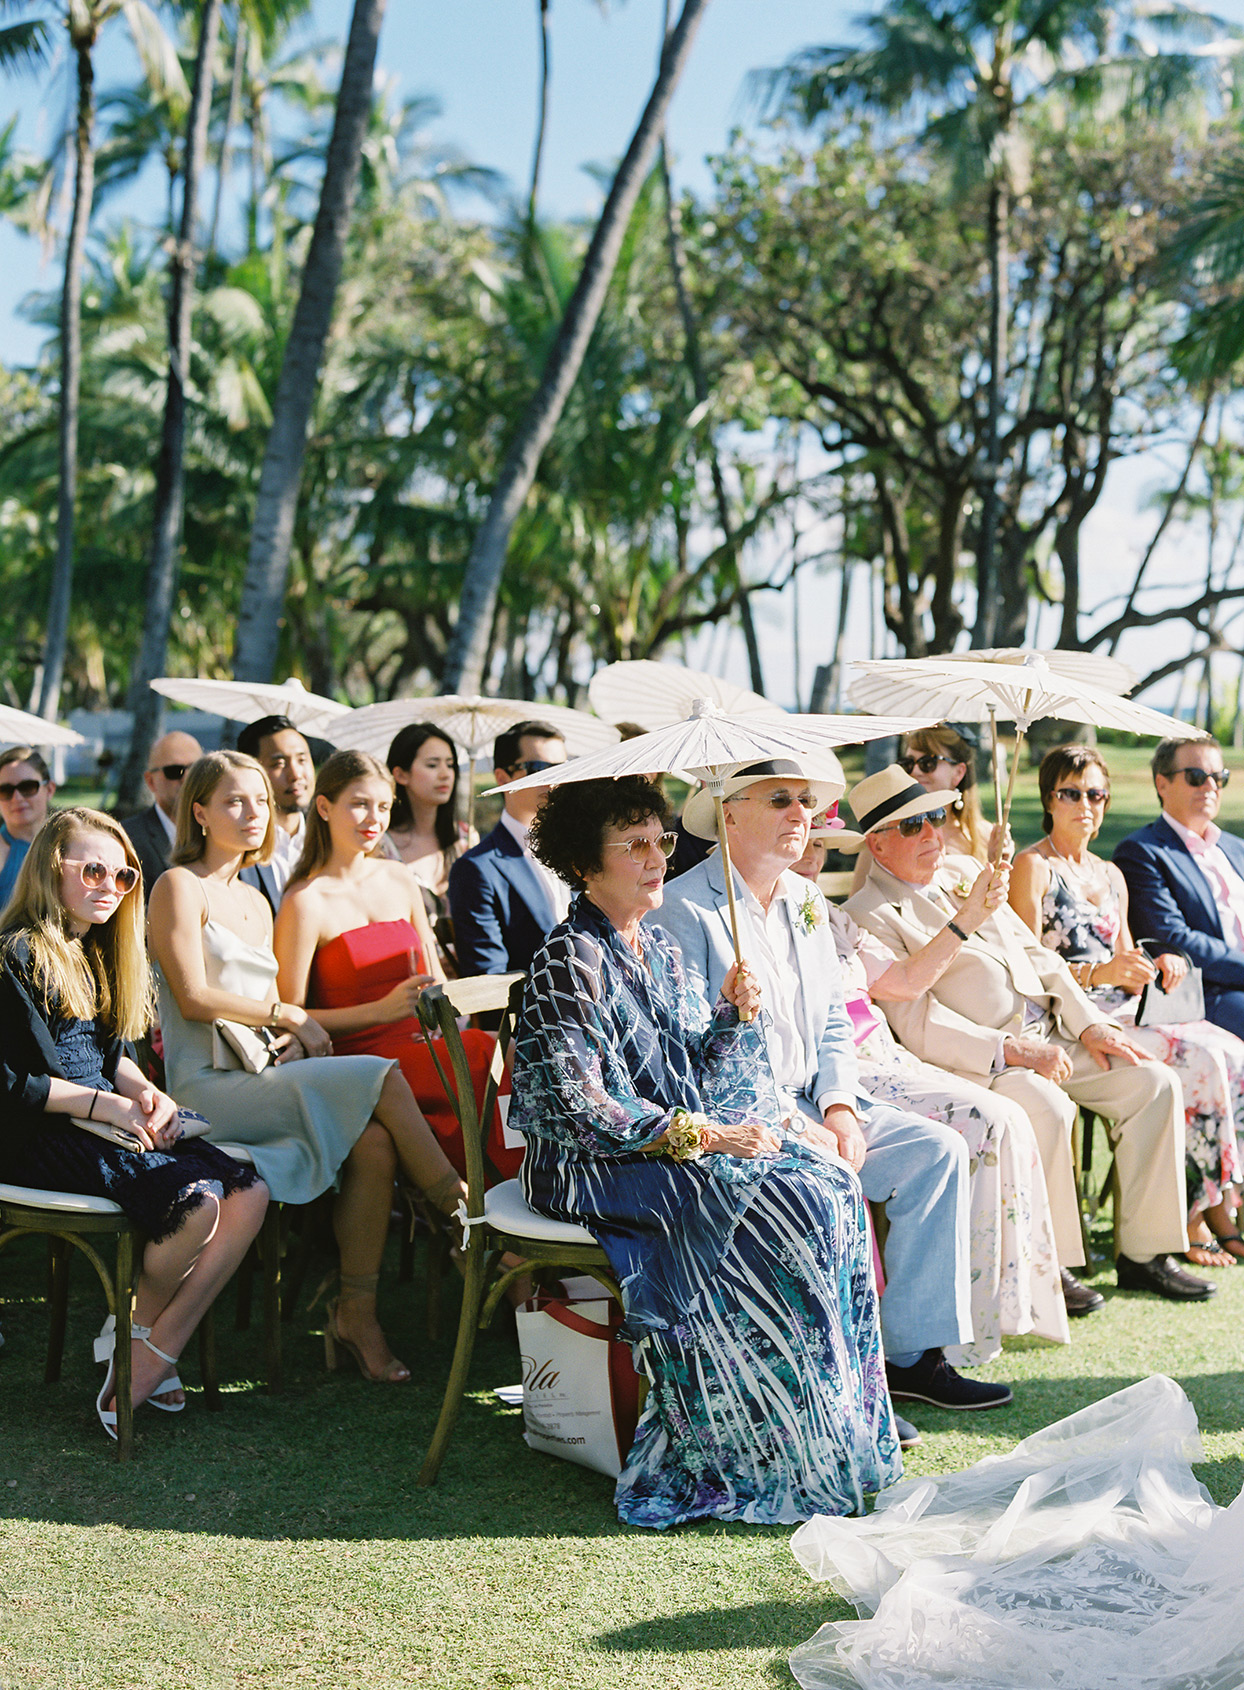 azuki sam wedding guests holding parasols during ceremony